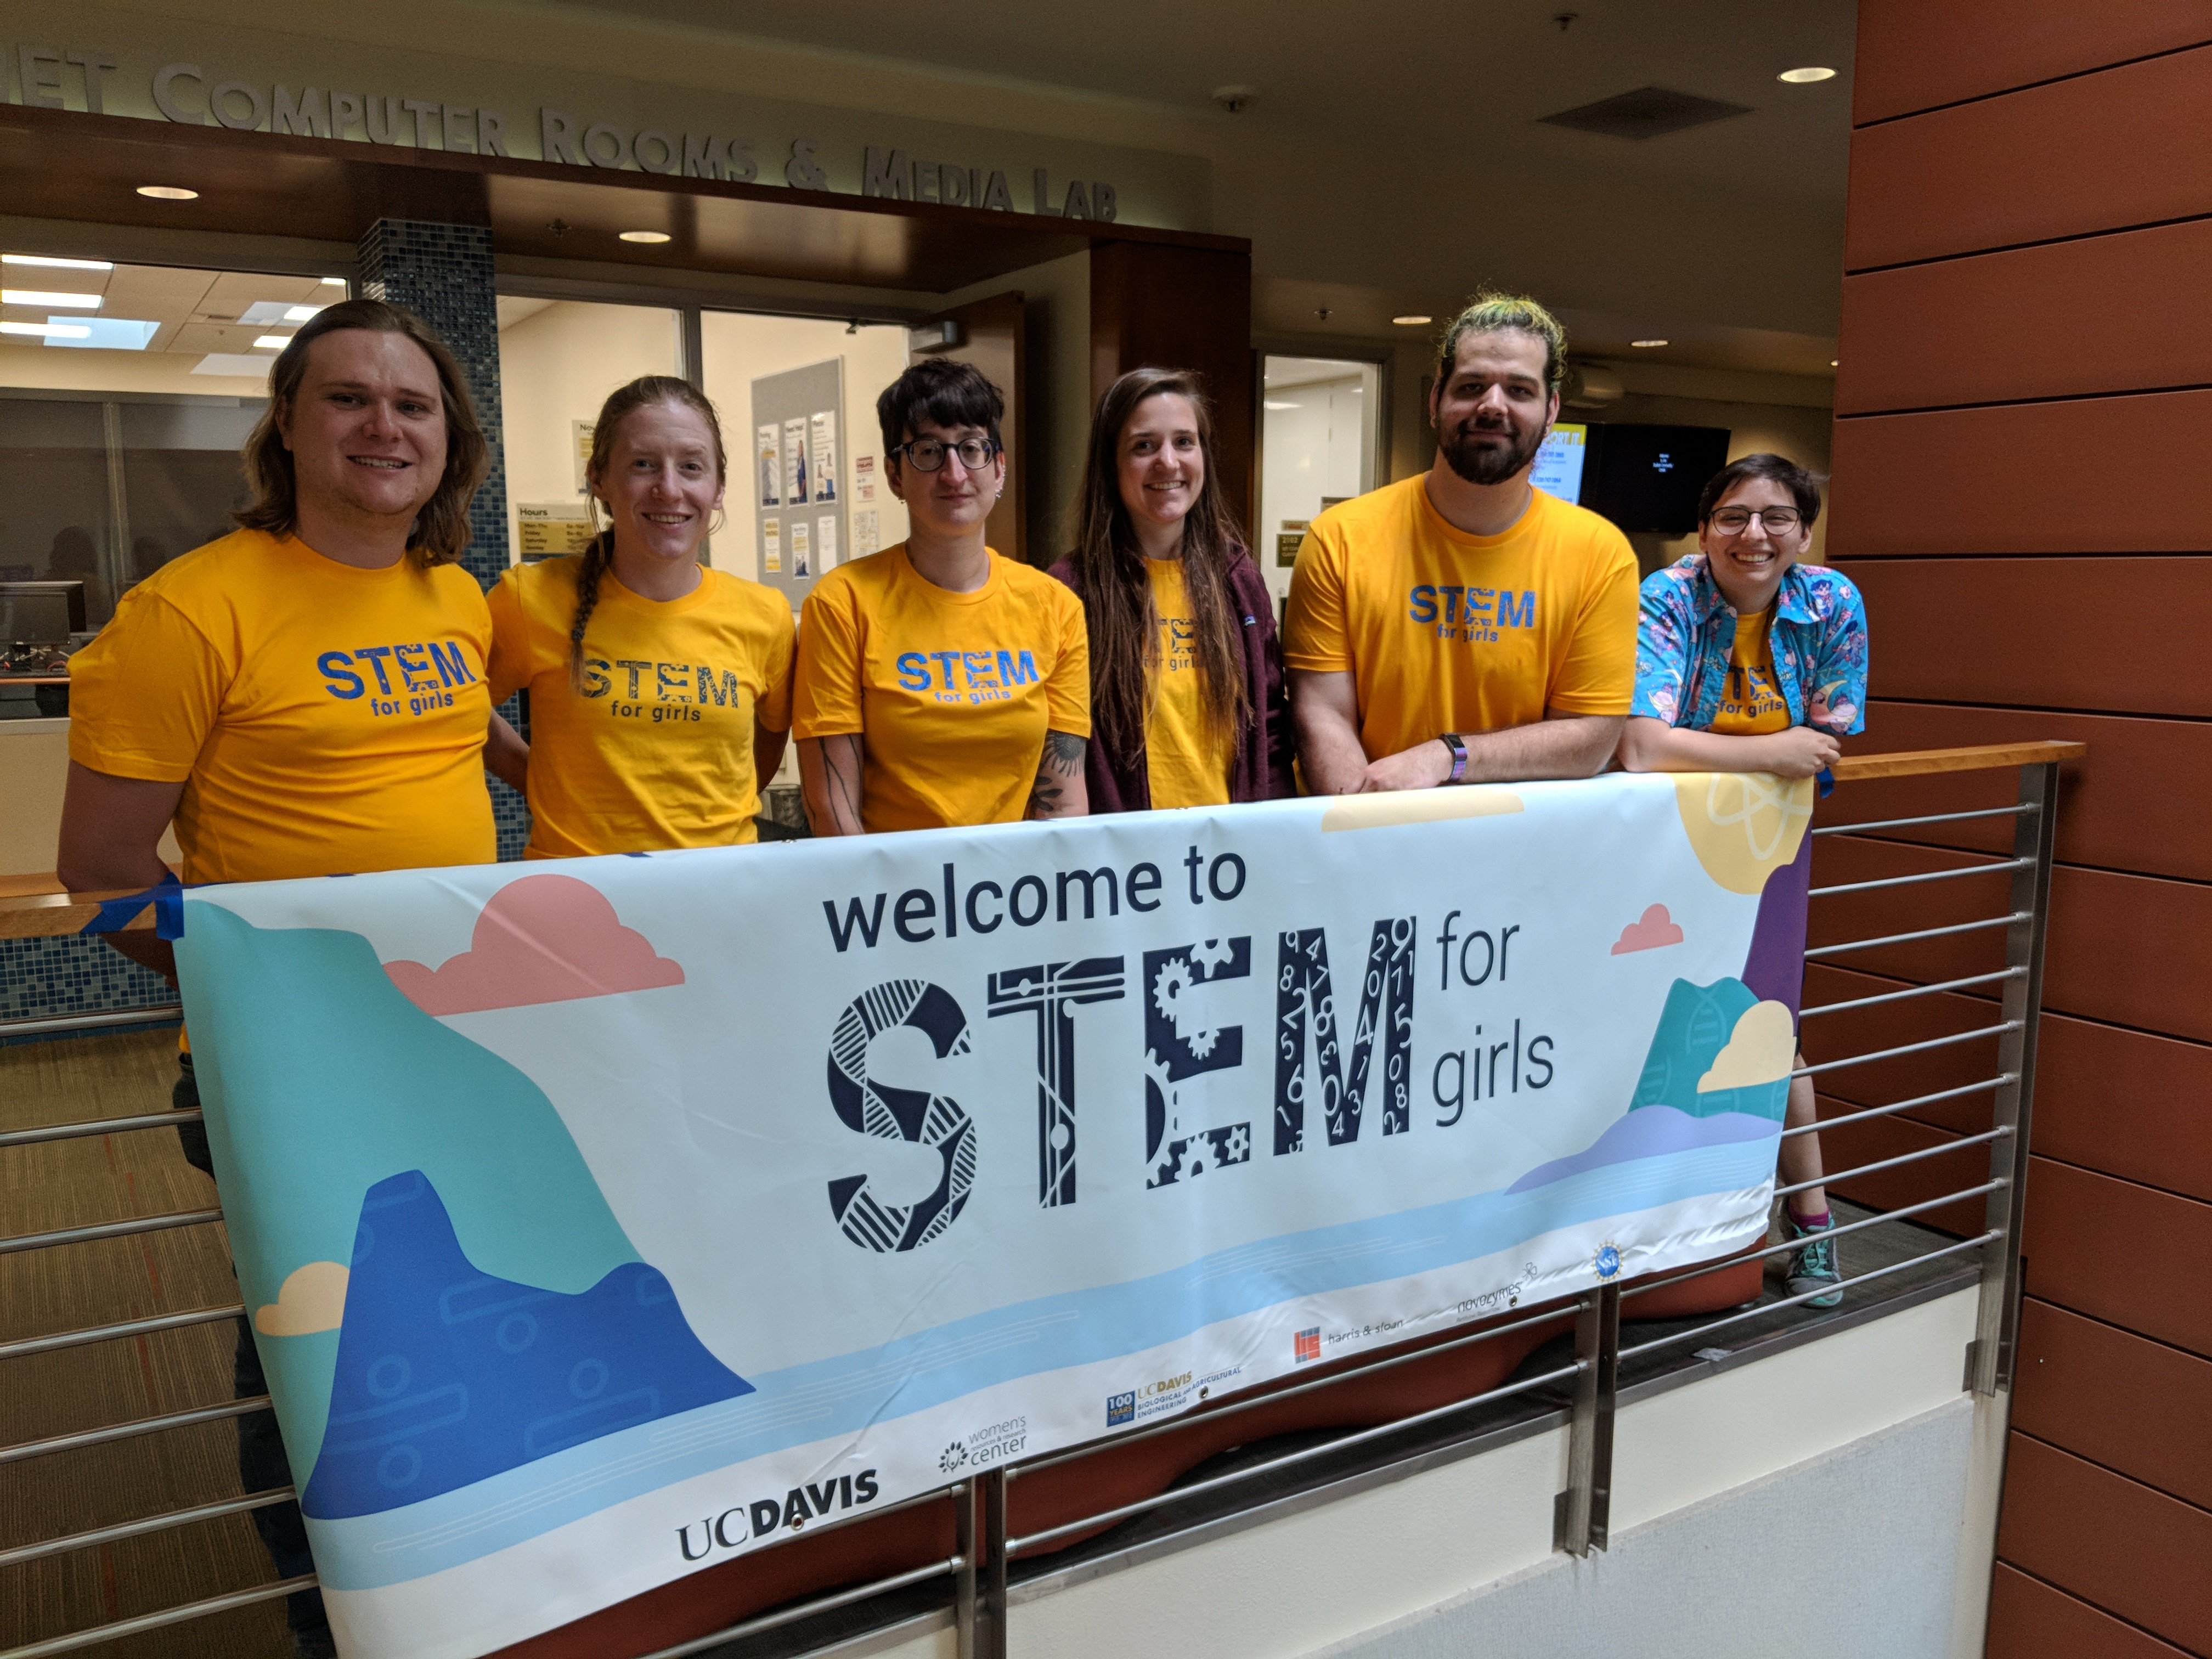 AWM members at STEM for Girls, May 2018.